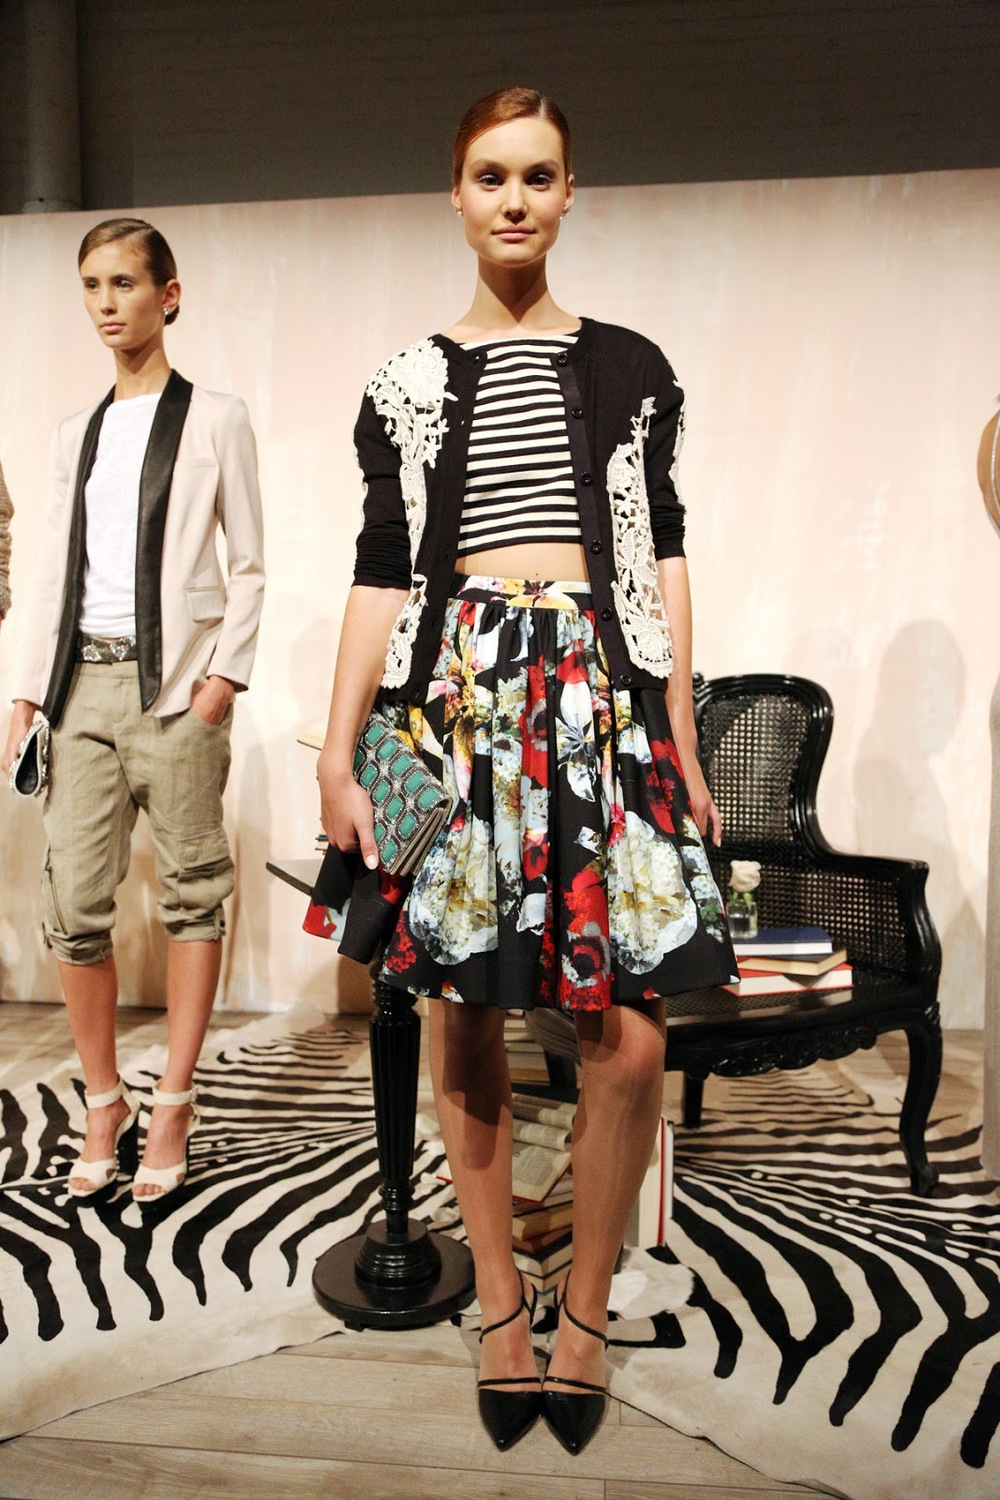 Alice+++Olivia+SS+2014+Collection+-+NYFW+-+Photo+by+Whitney+S.+Williams+-+alaLadywolf+(28).jpg